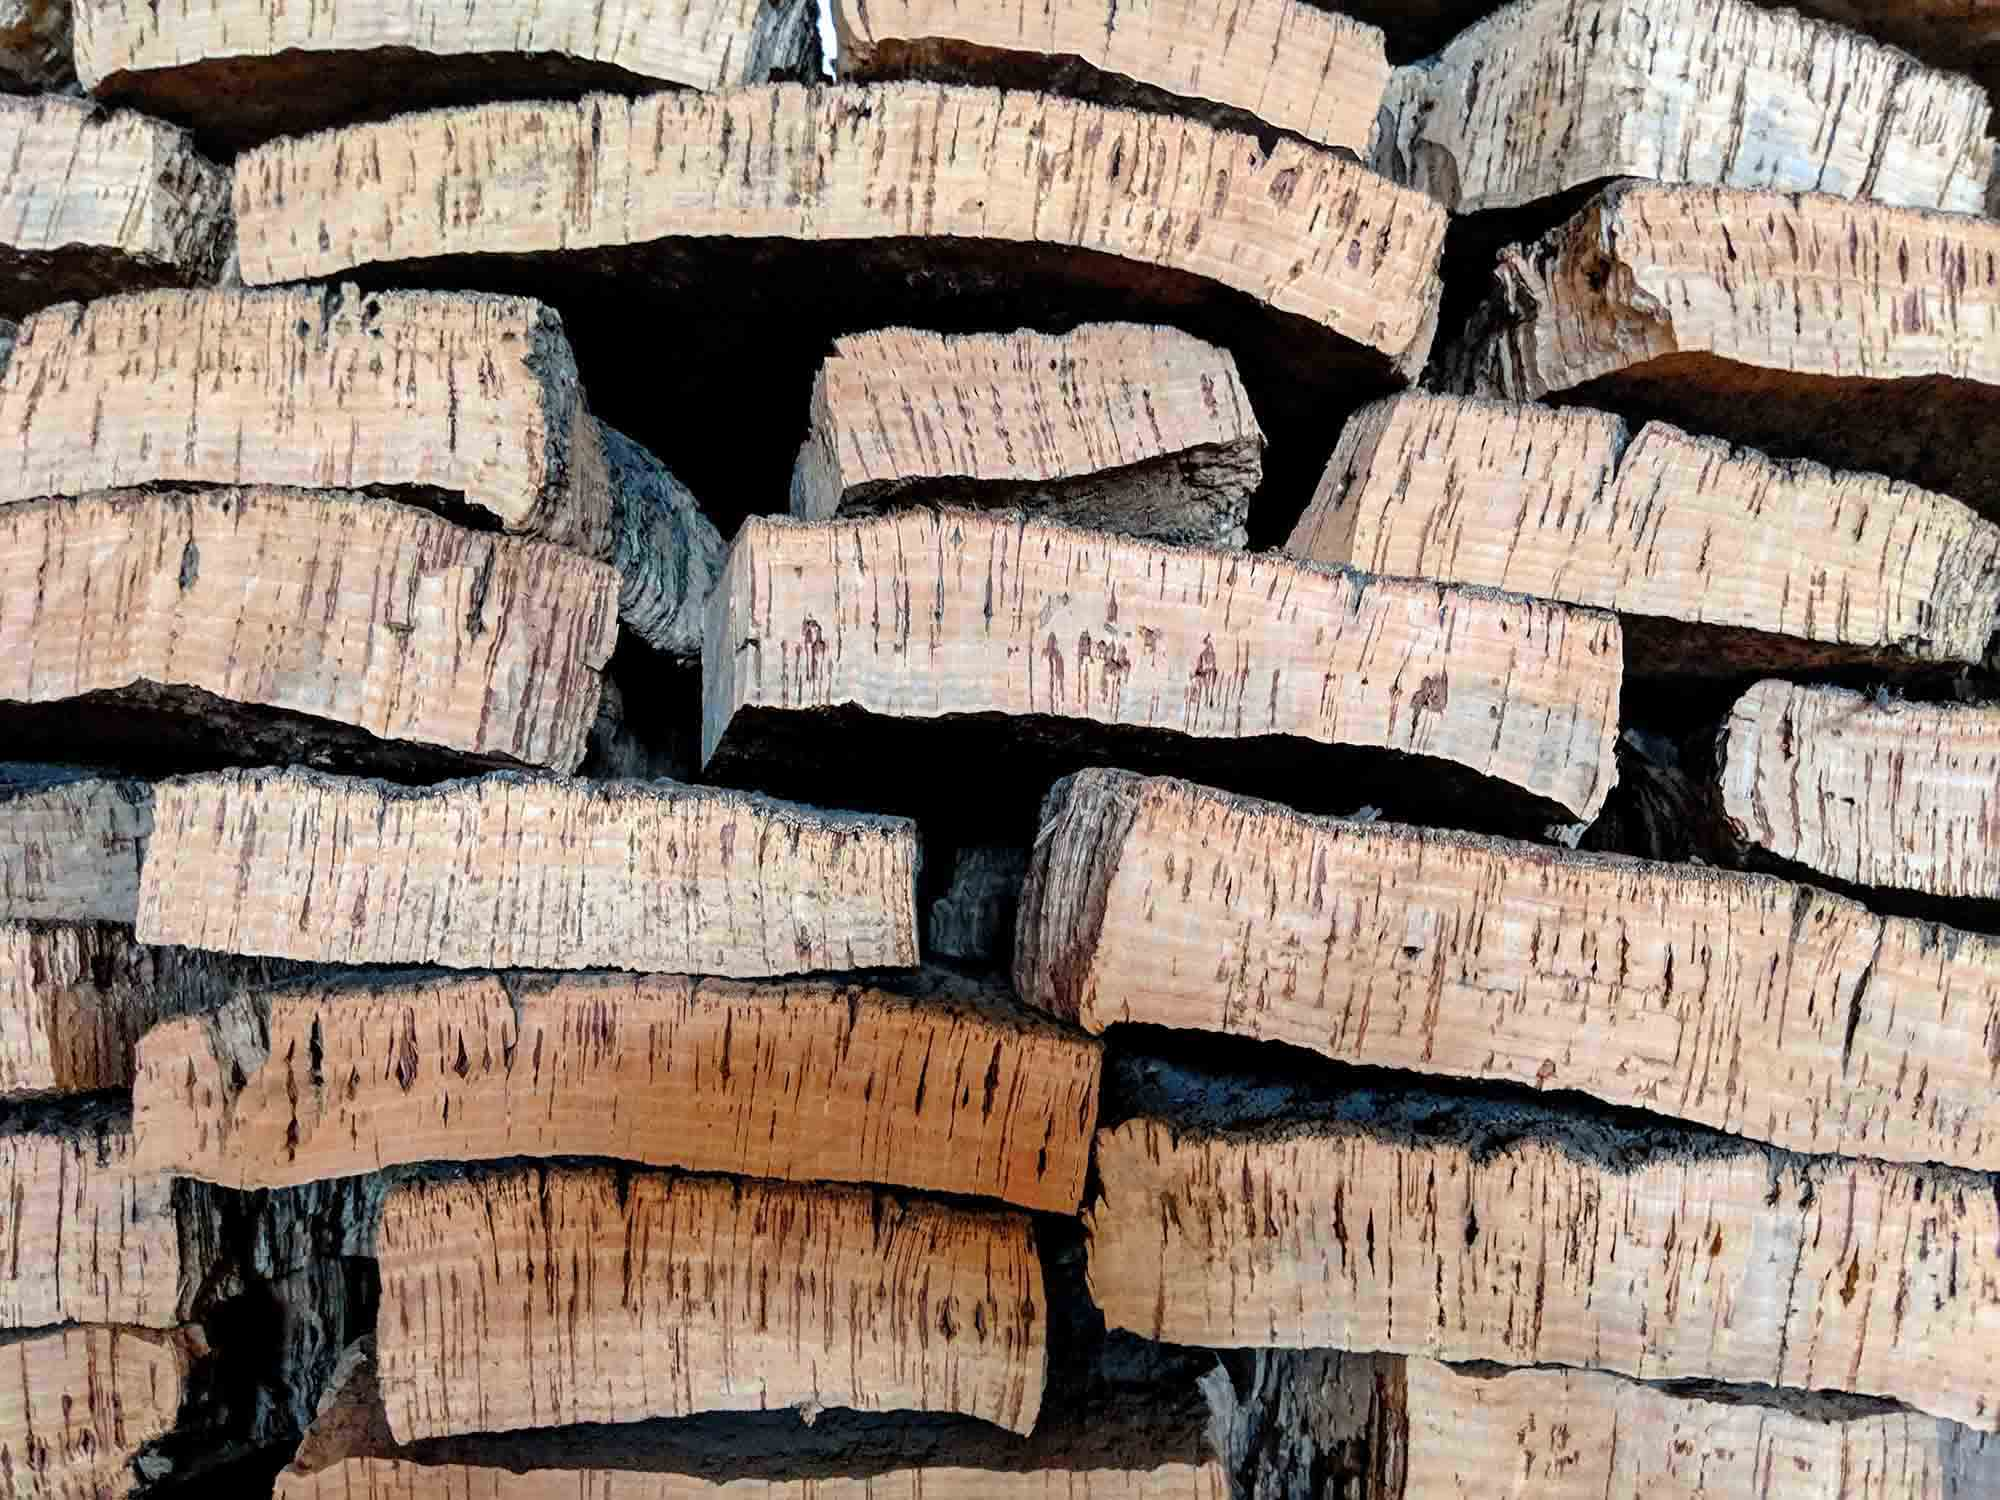 Thick pieces of cork